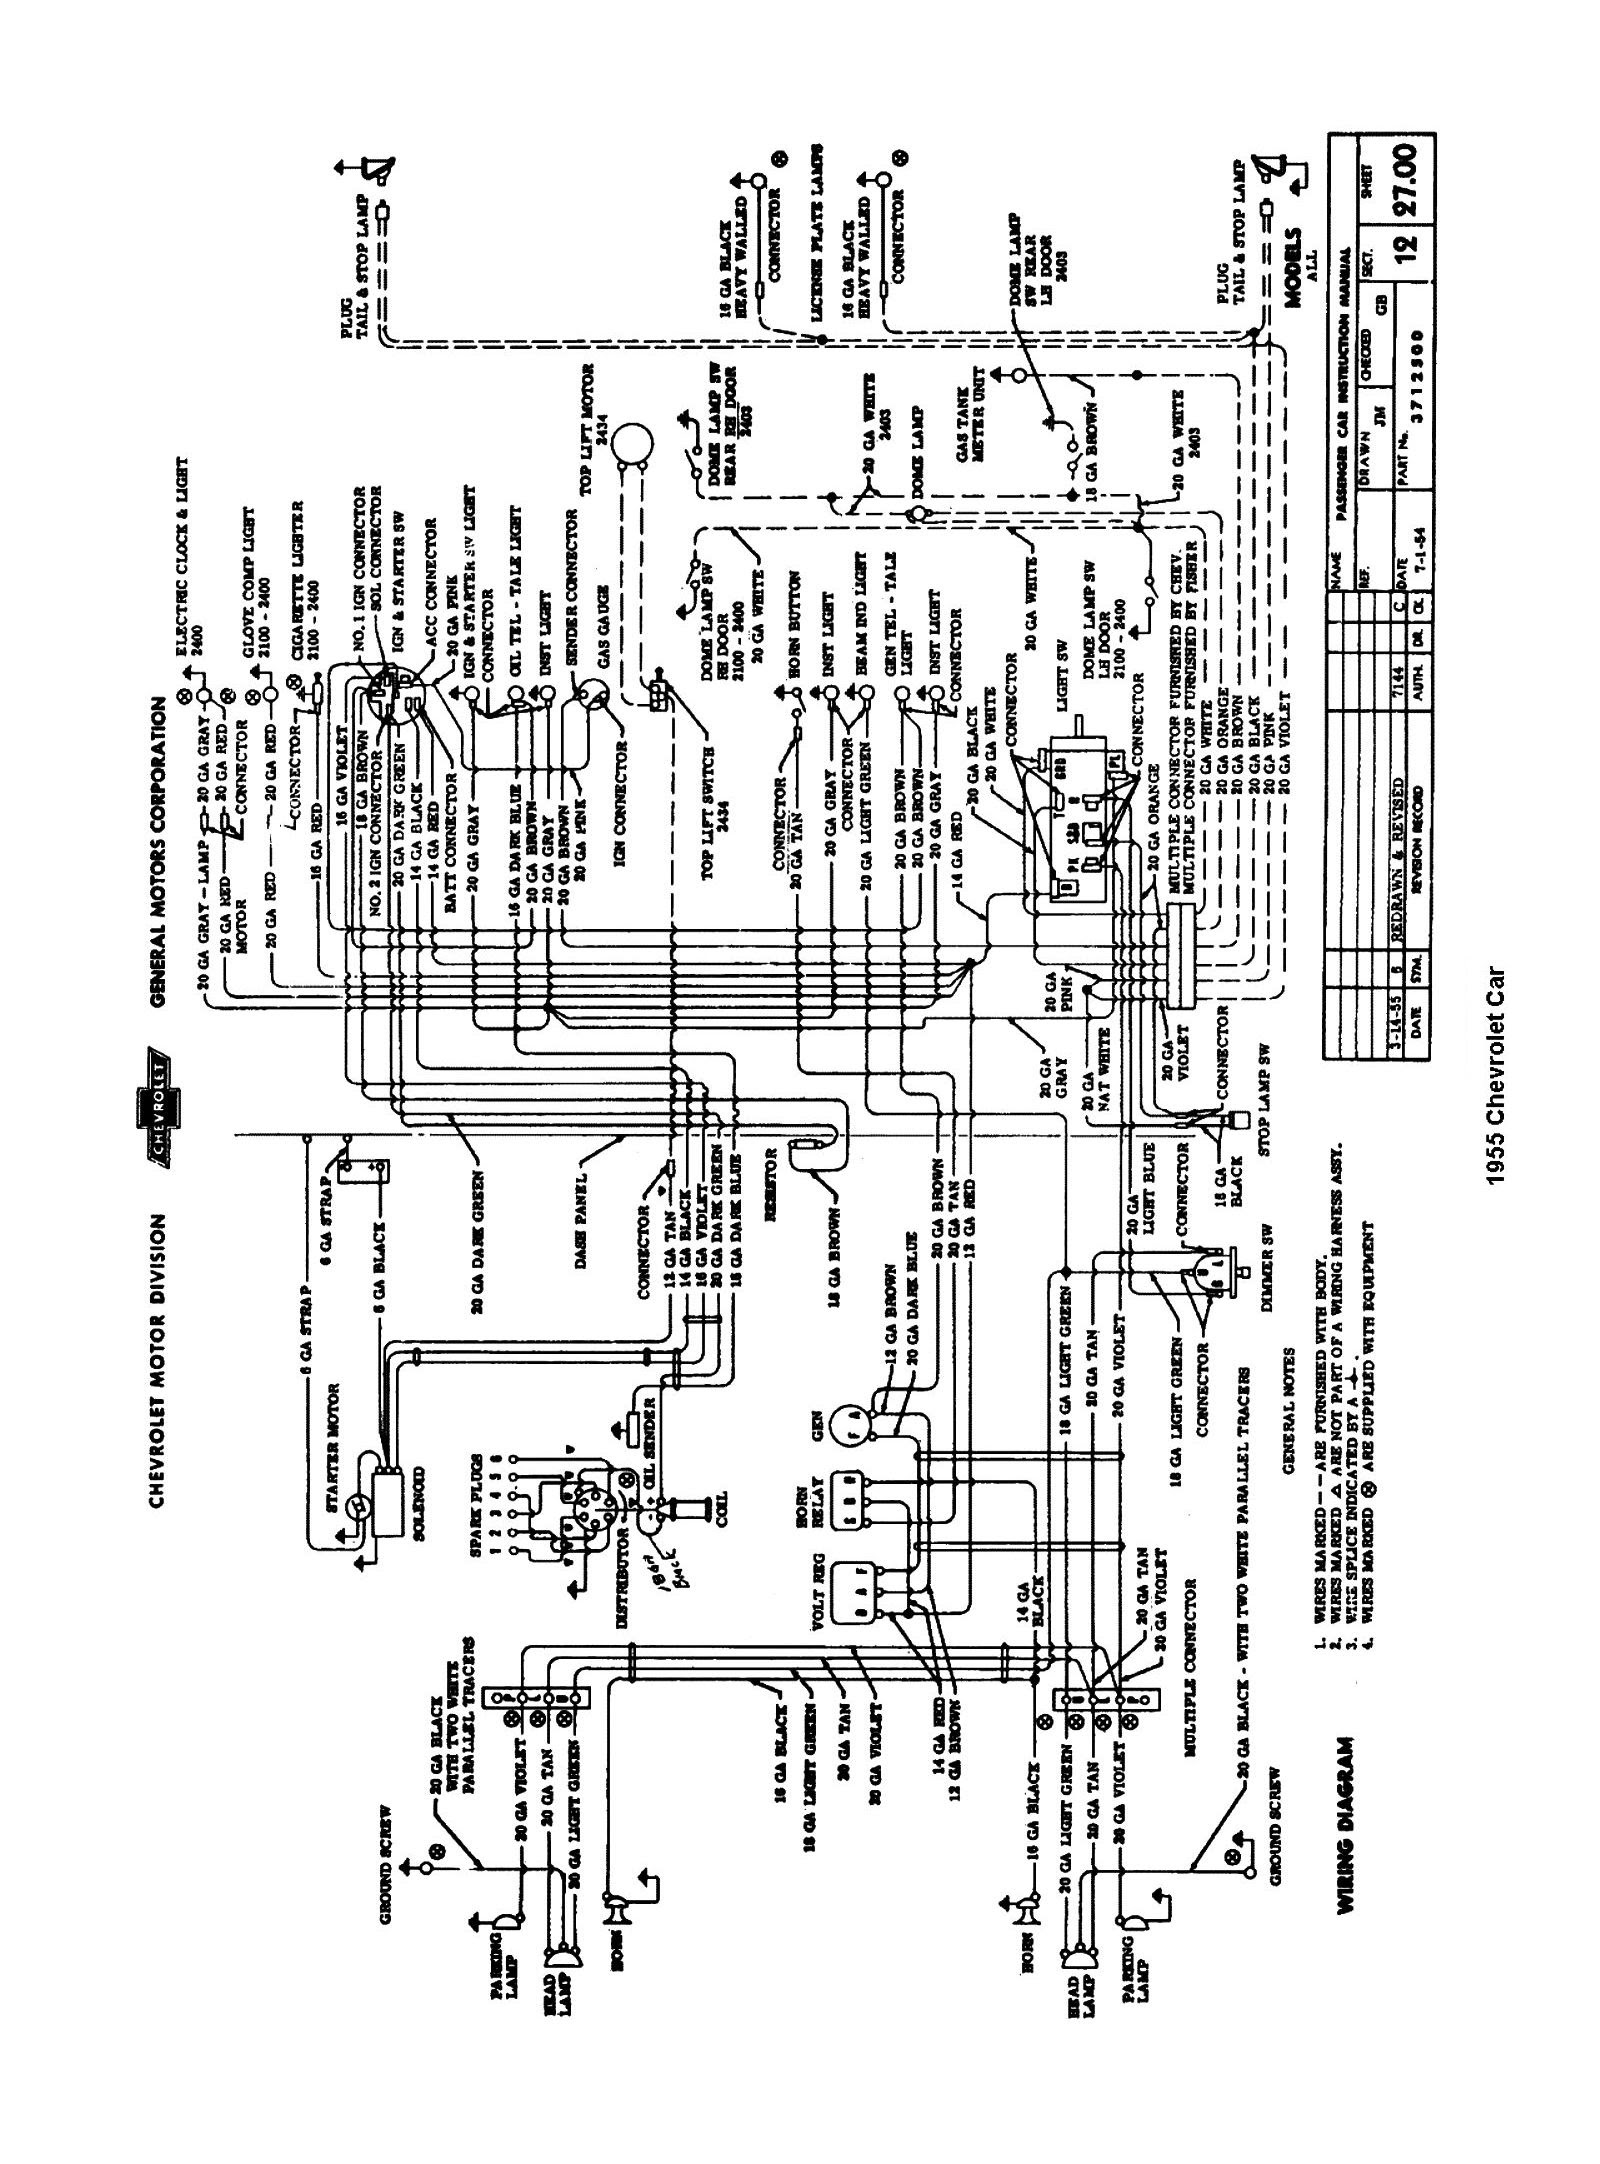 51 Studebaker Wiring Diagram Wiring Diagram Networks